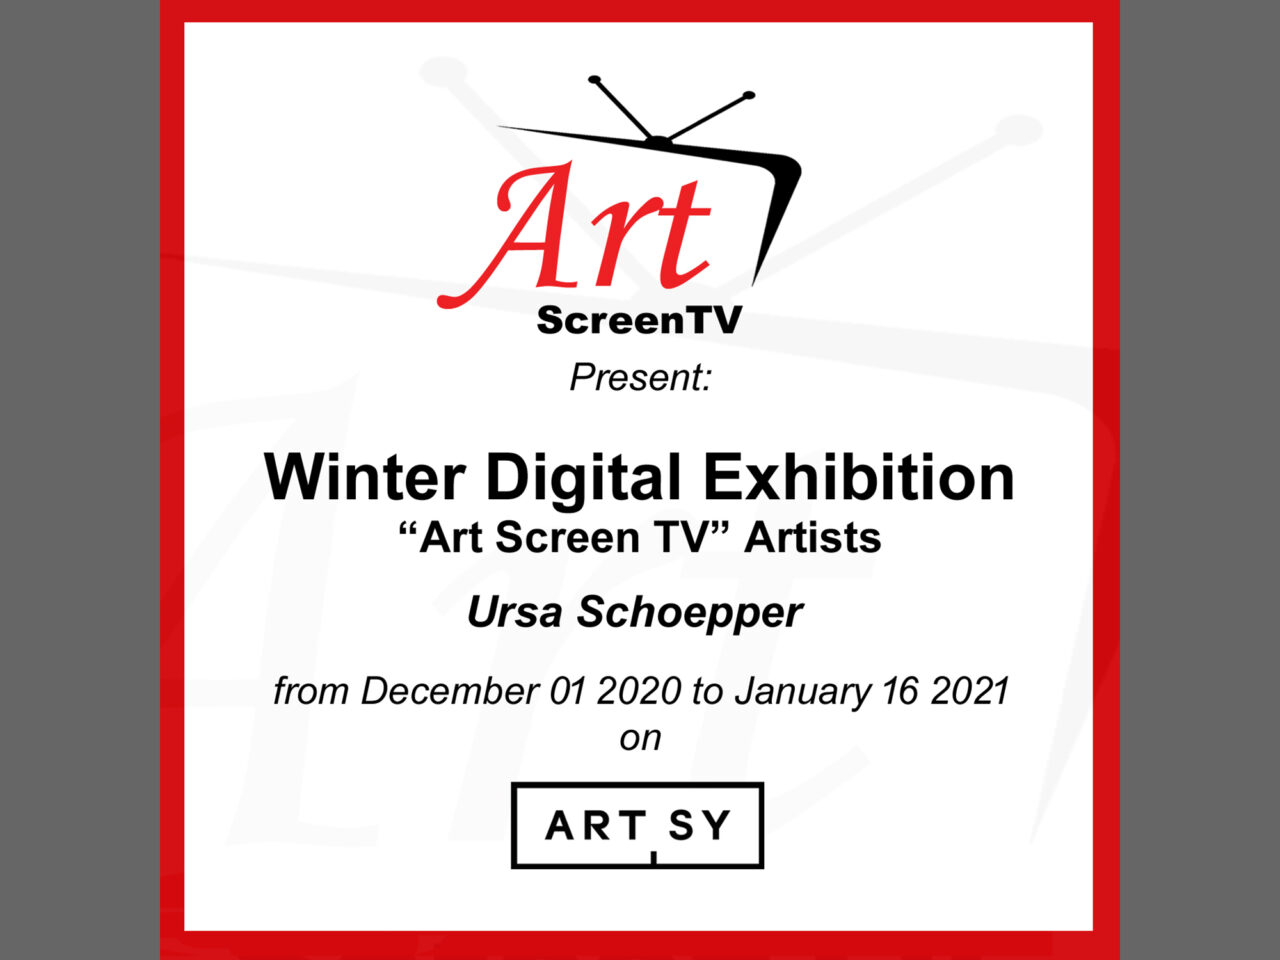 Winter Digital Exhibition Artists Art Screen TV 2020″ Artsy image